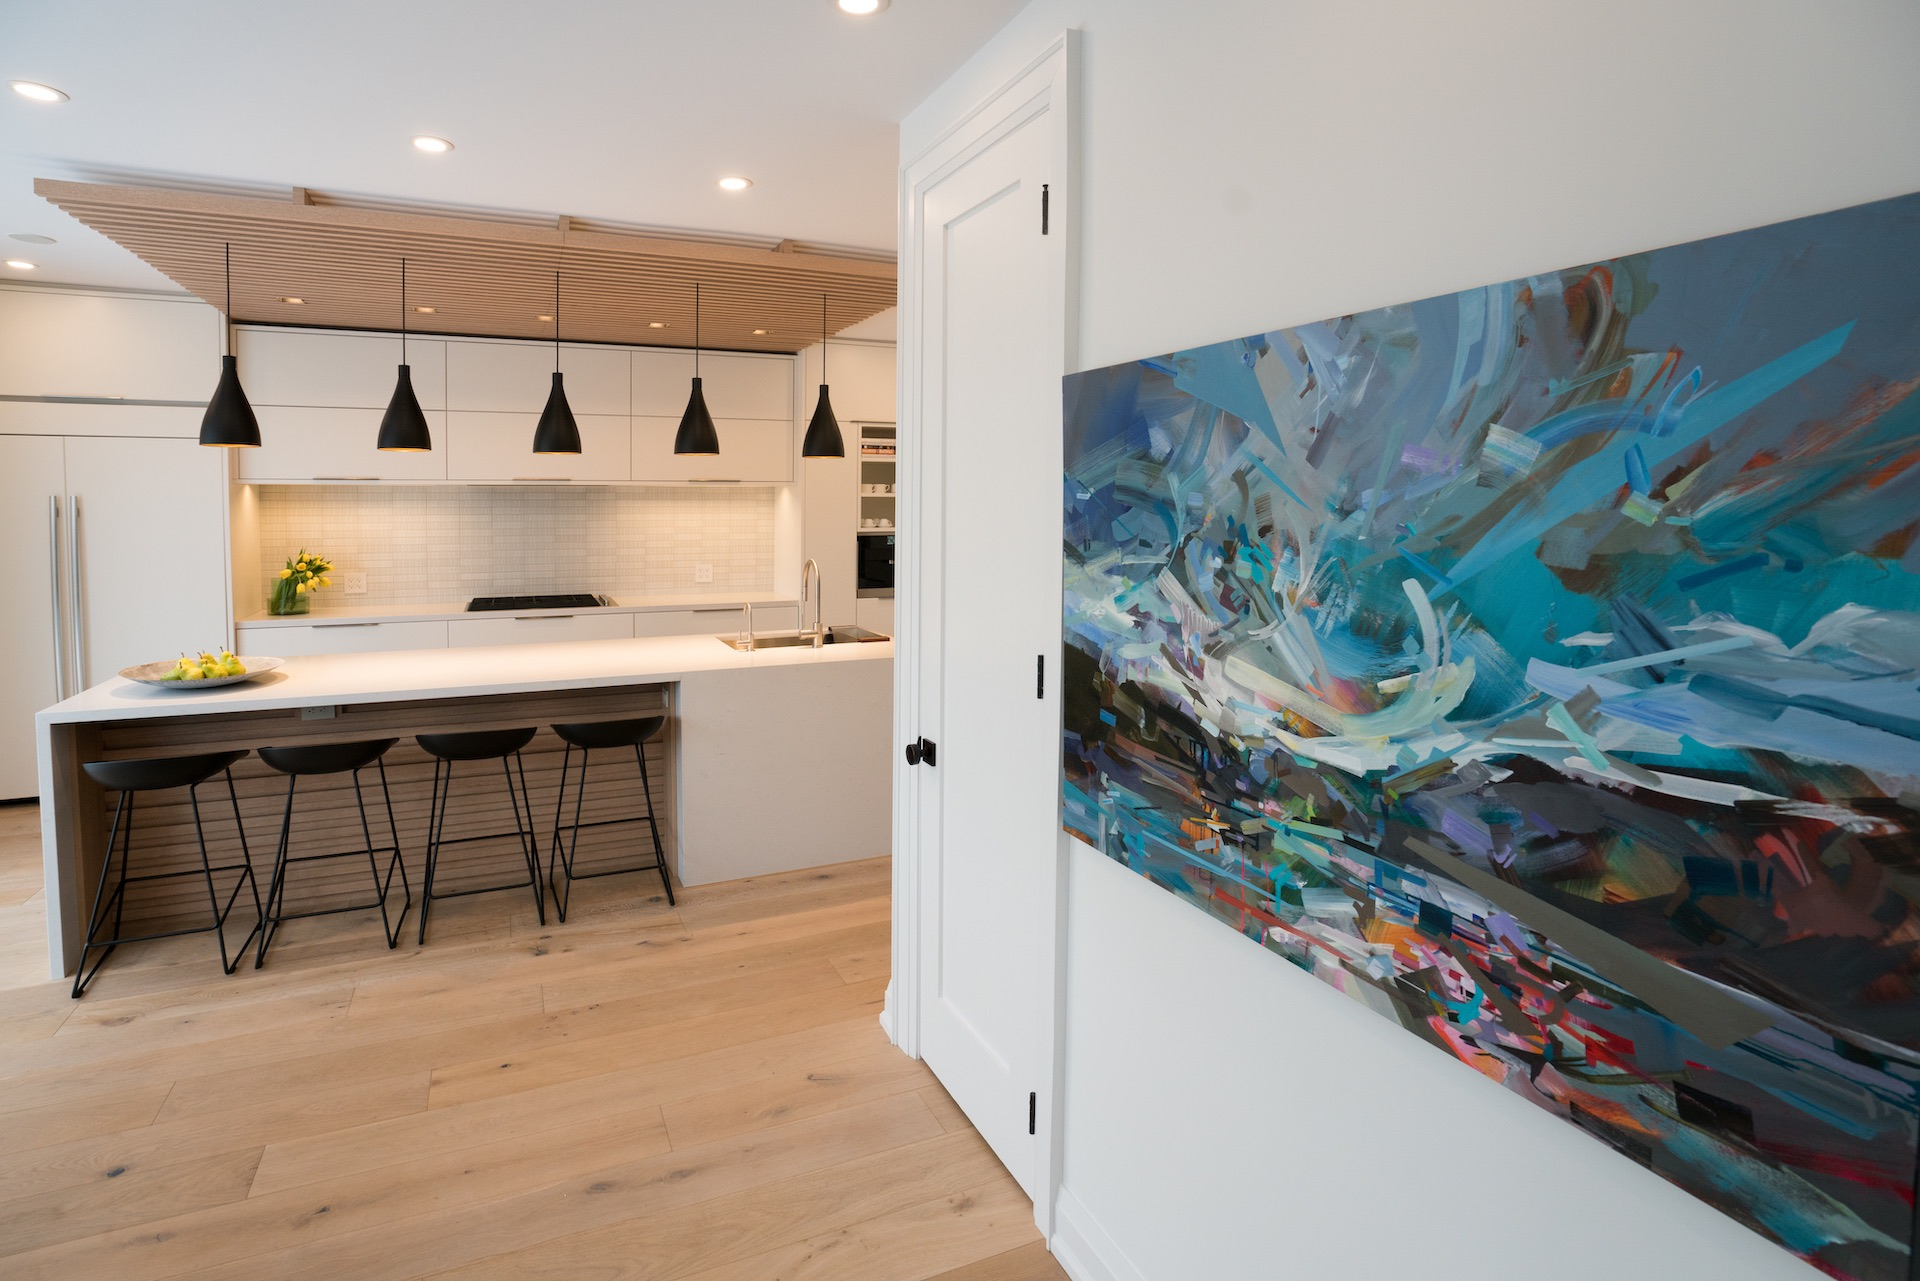 Art on wall with kitchen in background